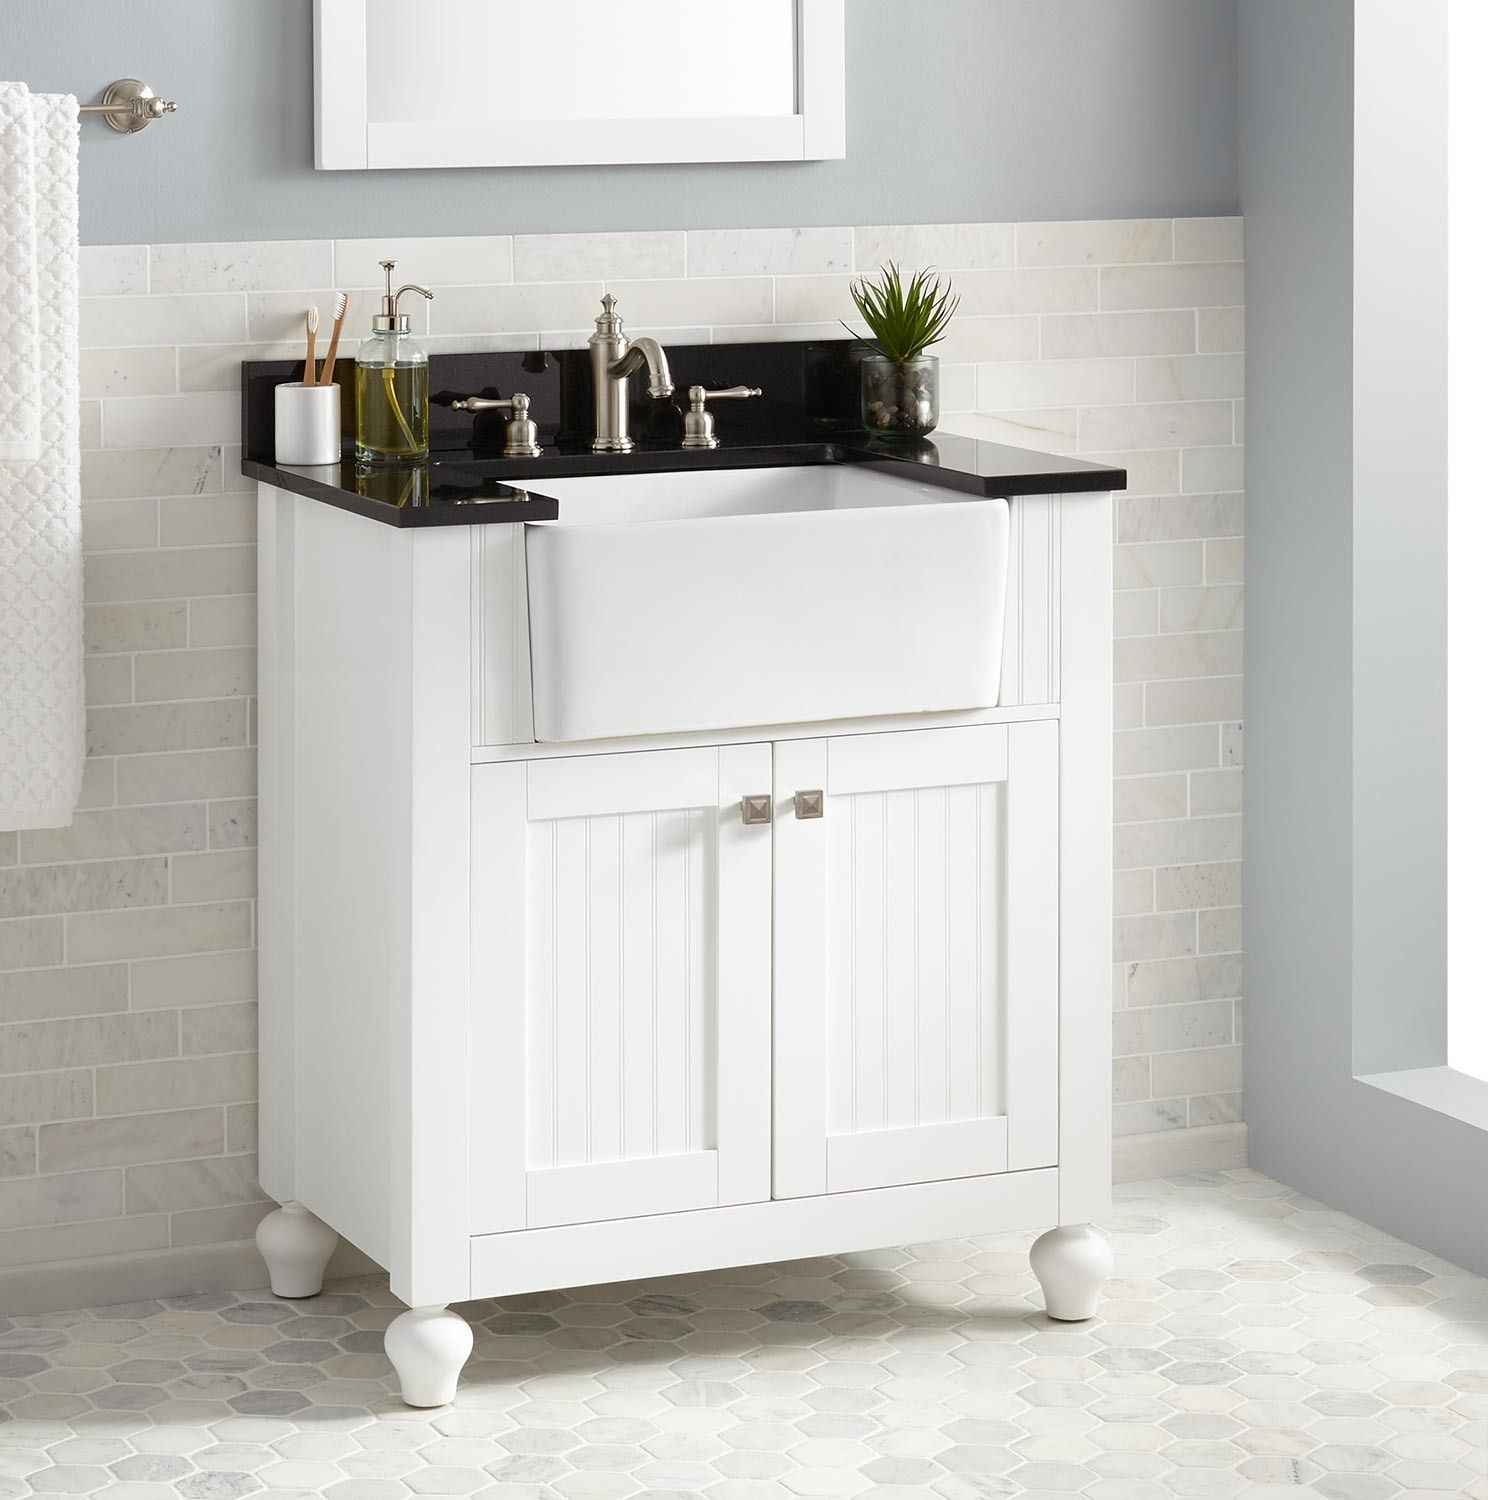 Amazing Strong Farmhouse Style Bathroom Vanity Modern With Home Design within Luxury Farmhouse Style Bathroom Vanity